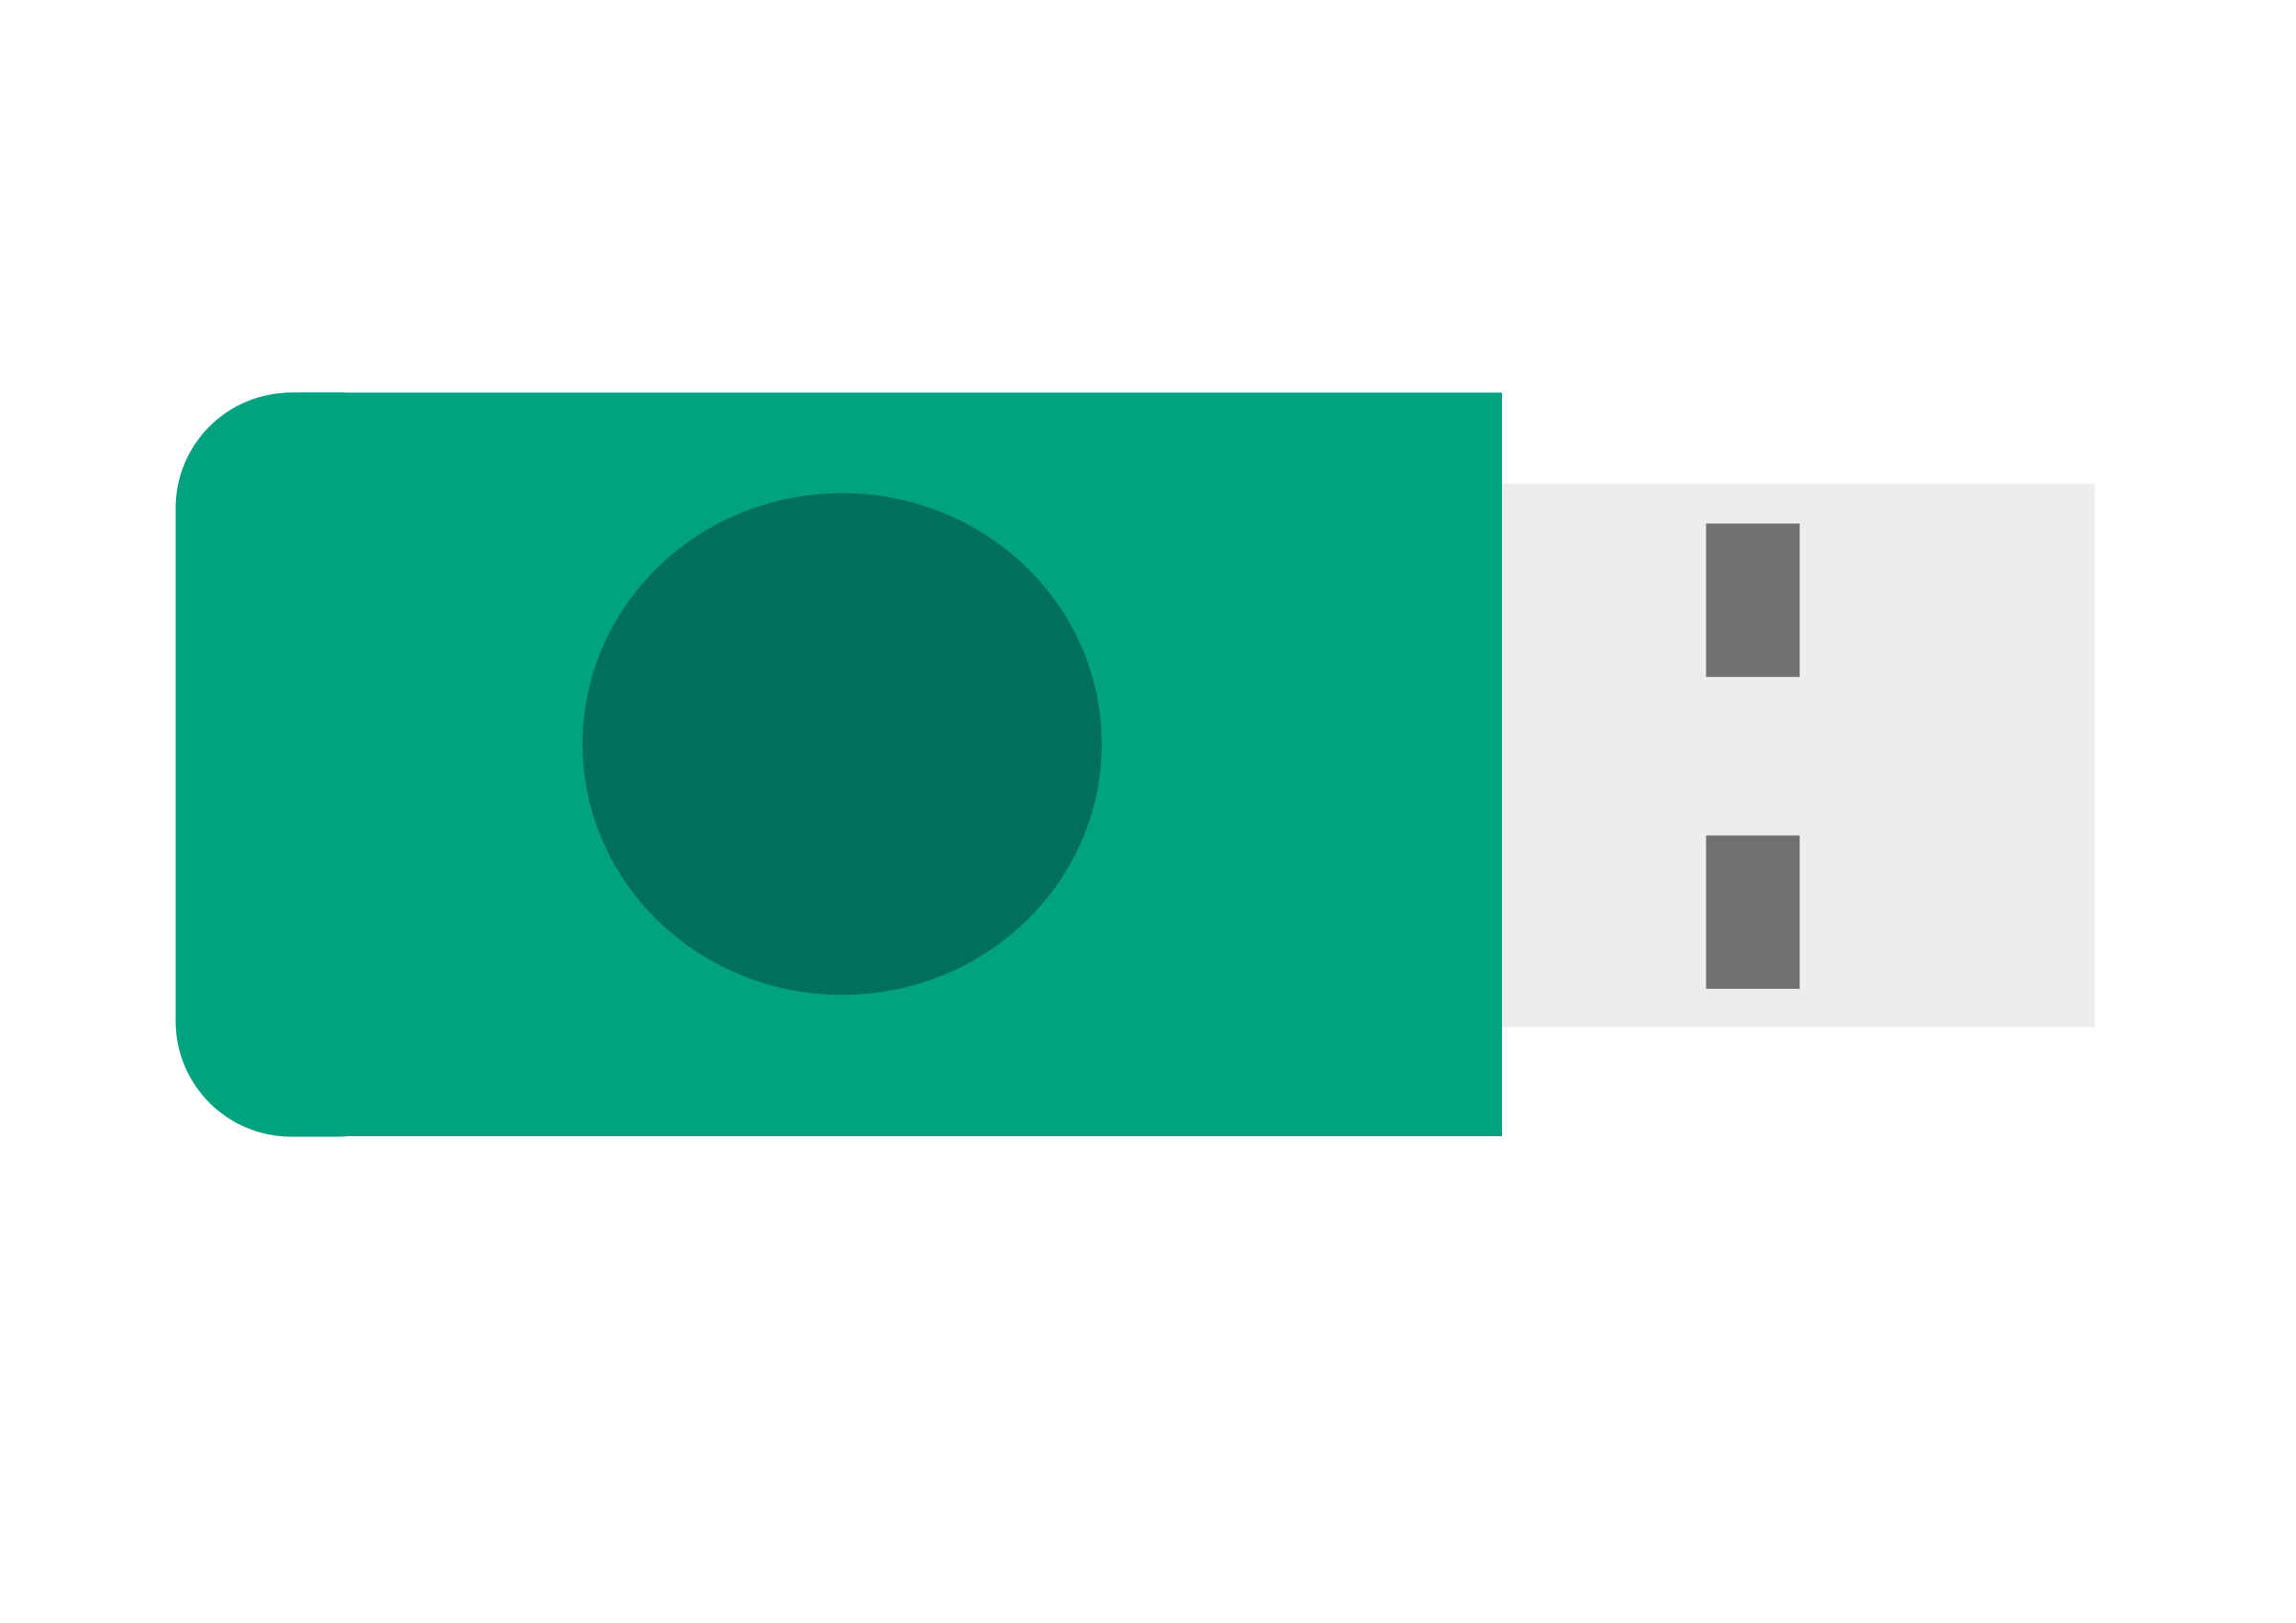 USB Stick  by TimLukasDev